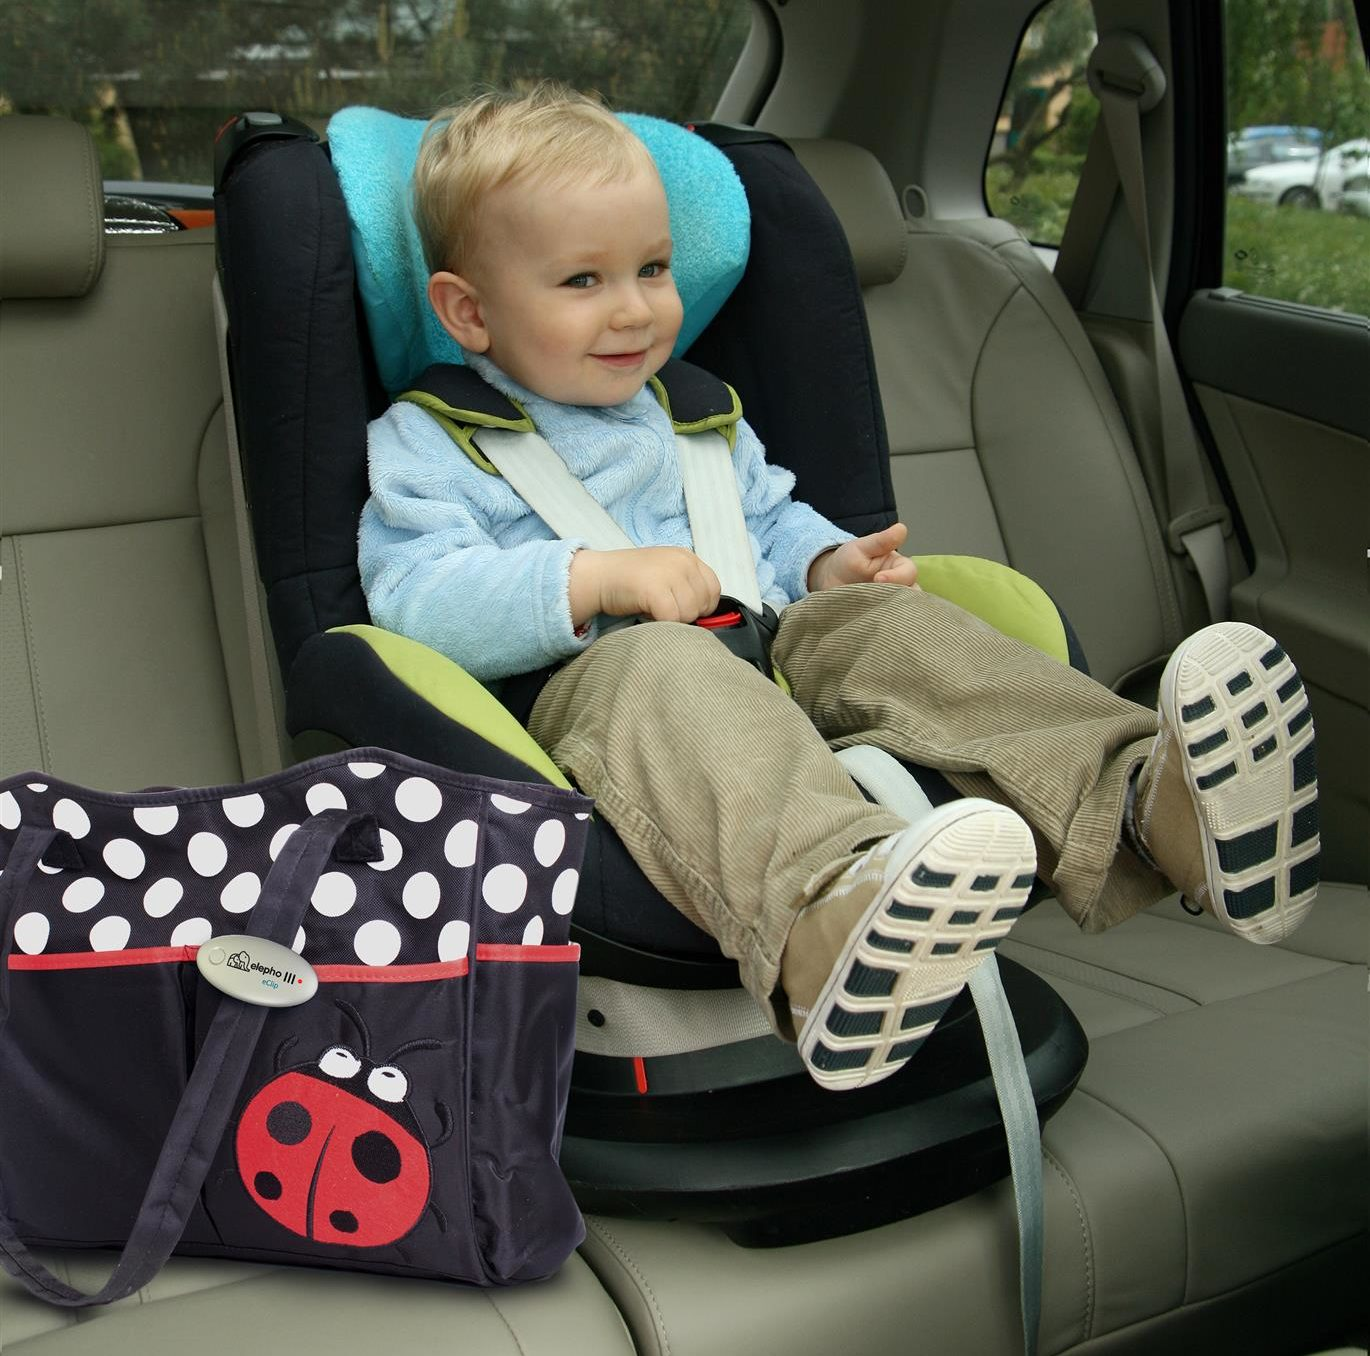 A parent uses the eClip Baby Reminder to keep themselves aware of their baby's location. (Elepho)